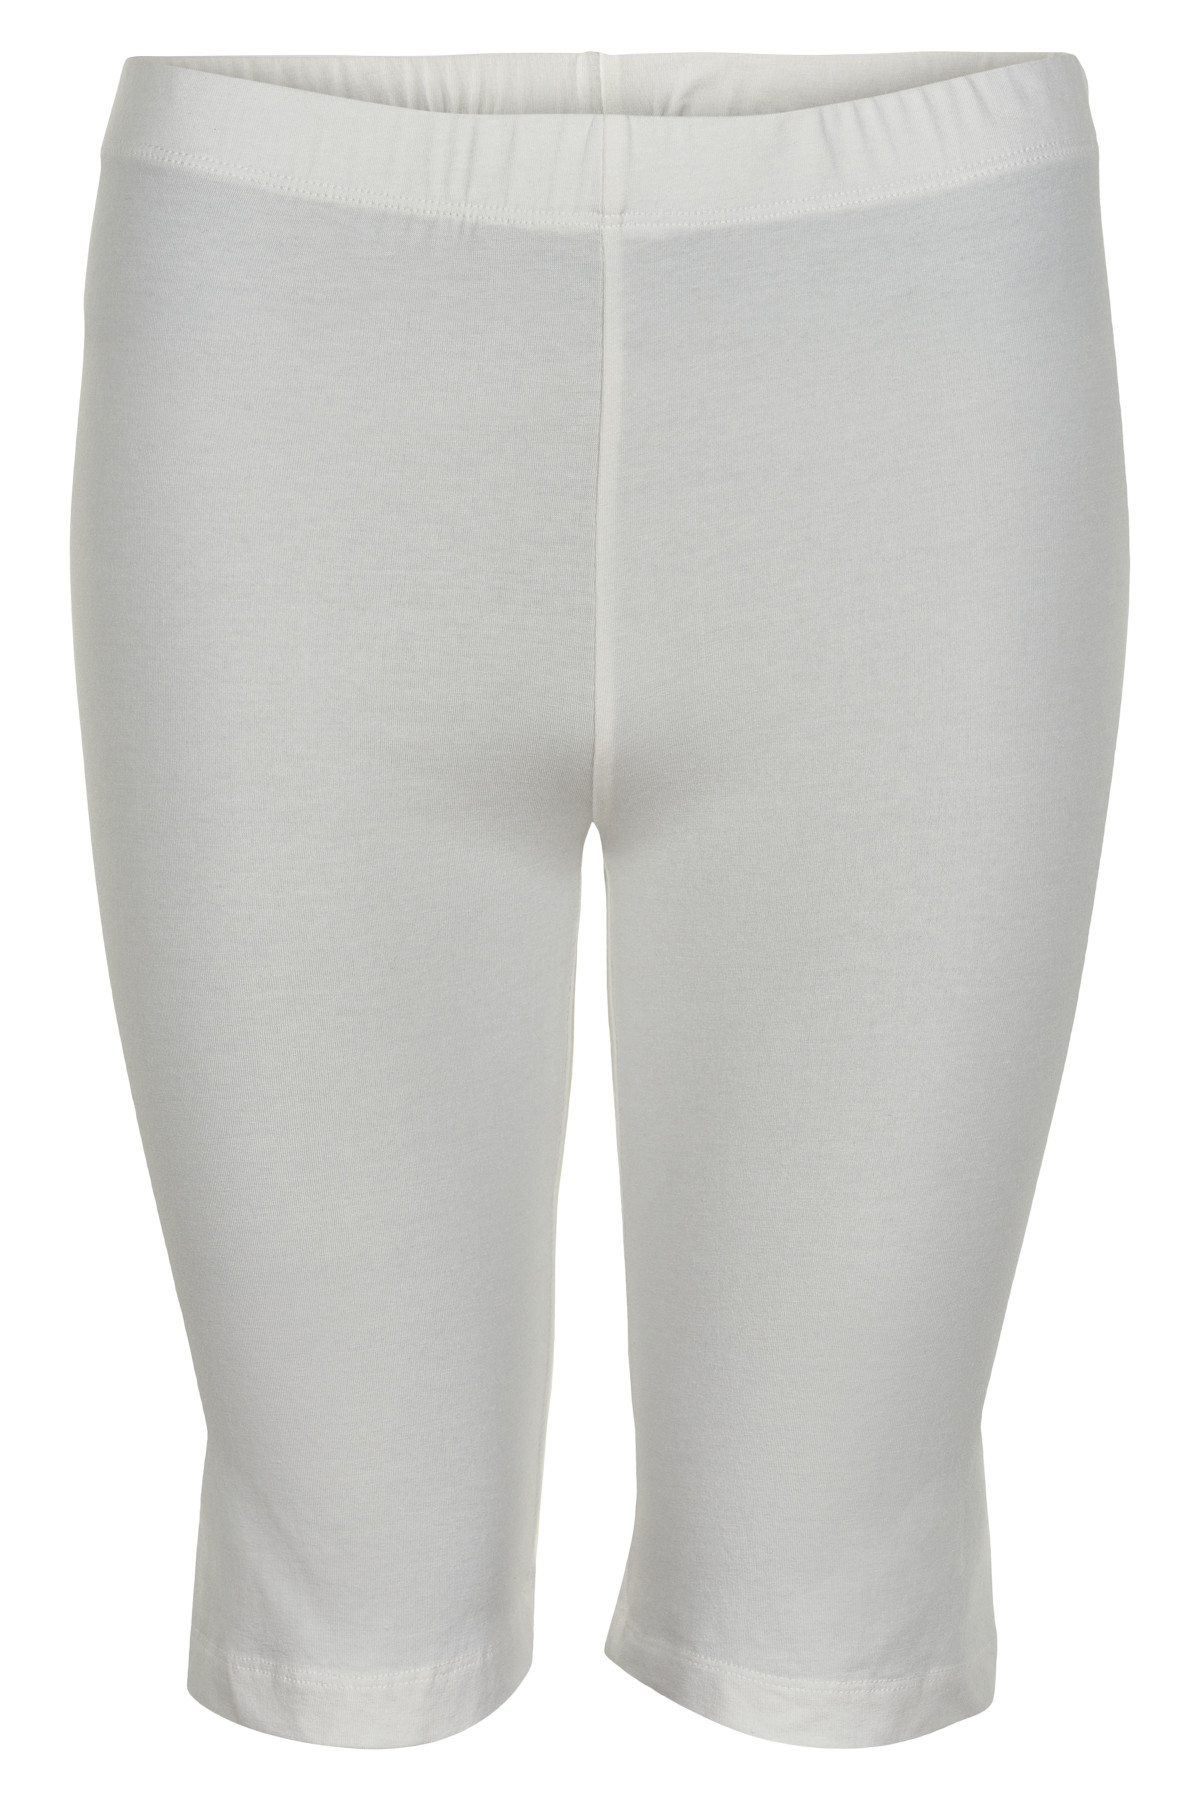 NOA NOA SHORT LEGGINGS 1-9435-2 00505 (Beige, L)